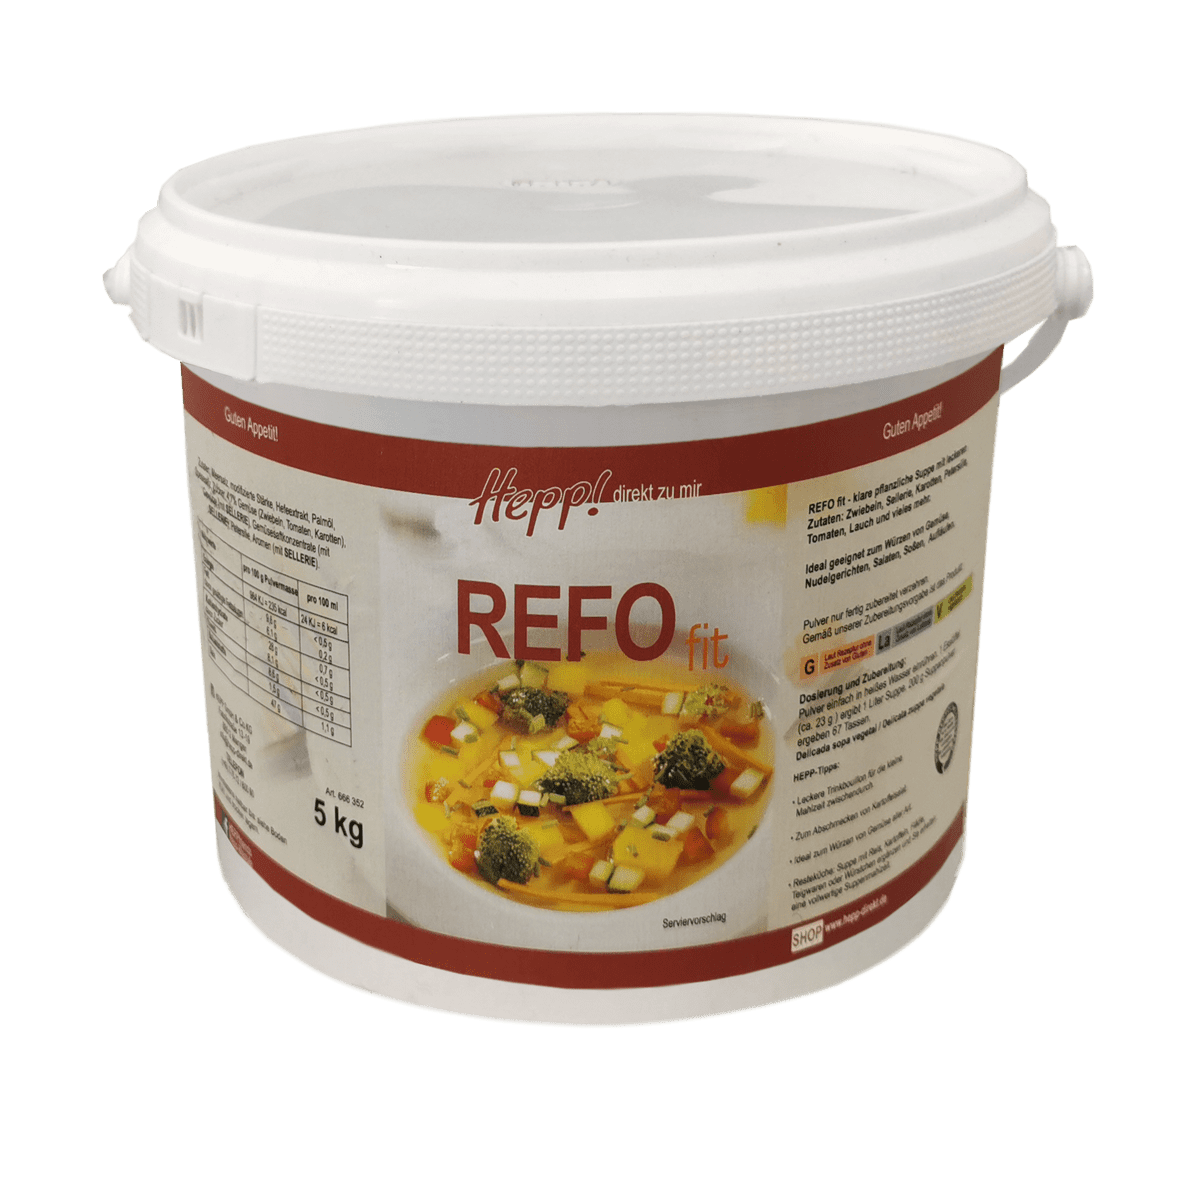 Refo fit Suppe